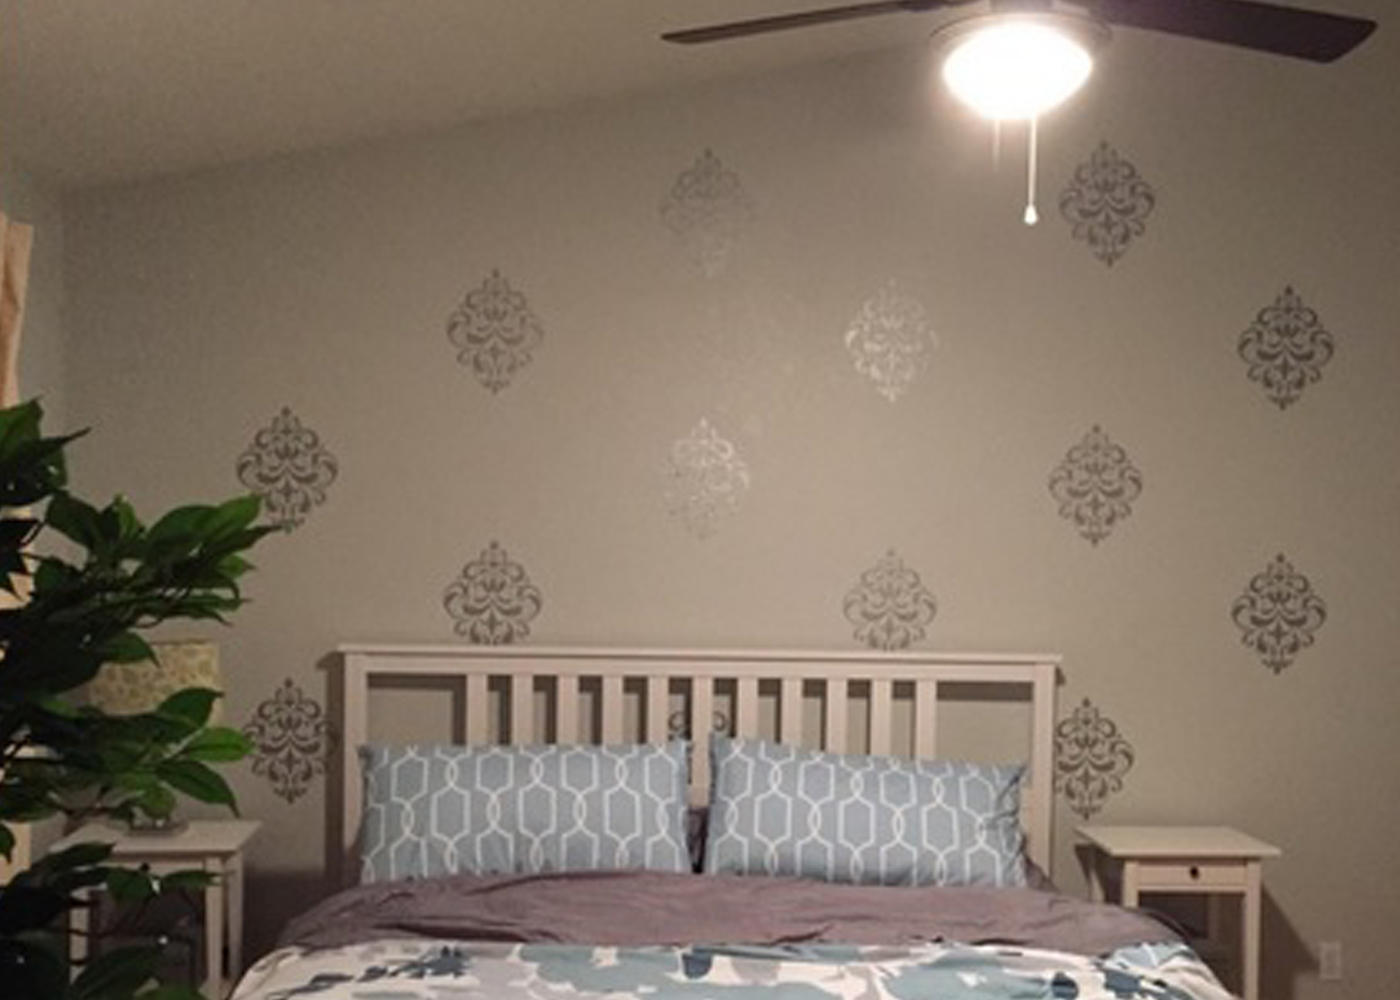 wd092-vintage-floral-medallion-wall-decal-in-silver.jpg